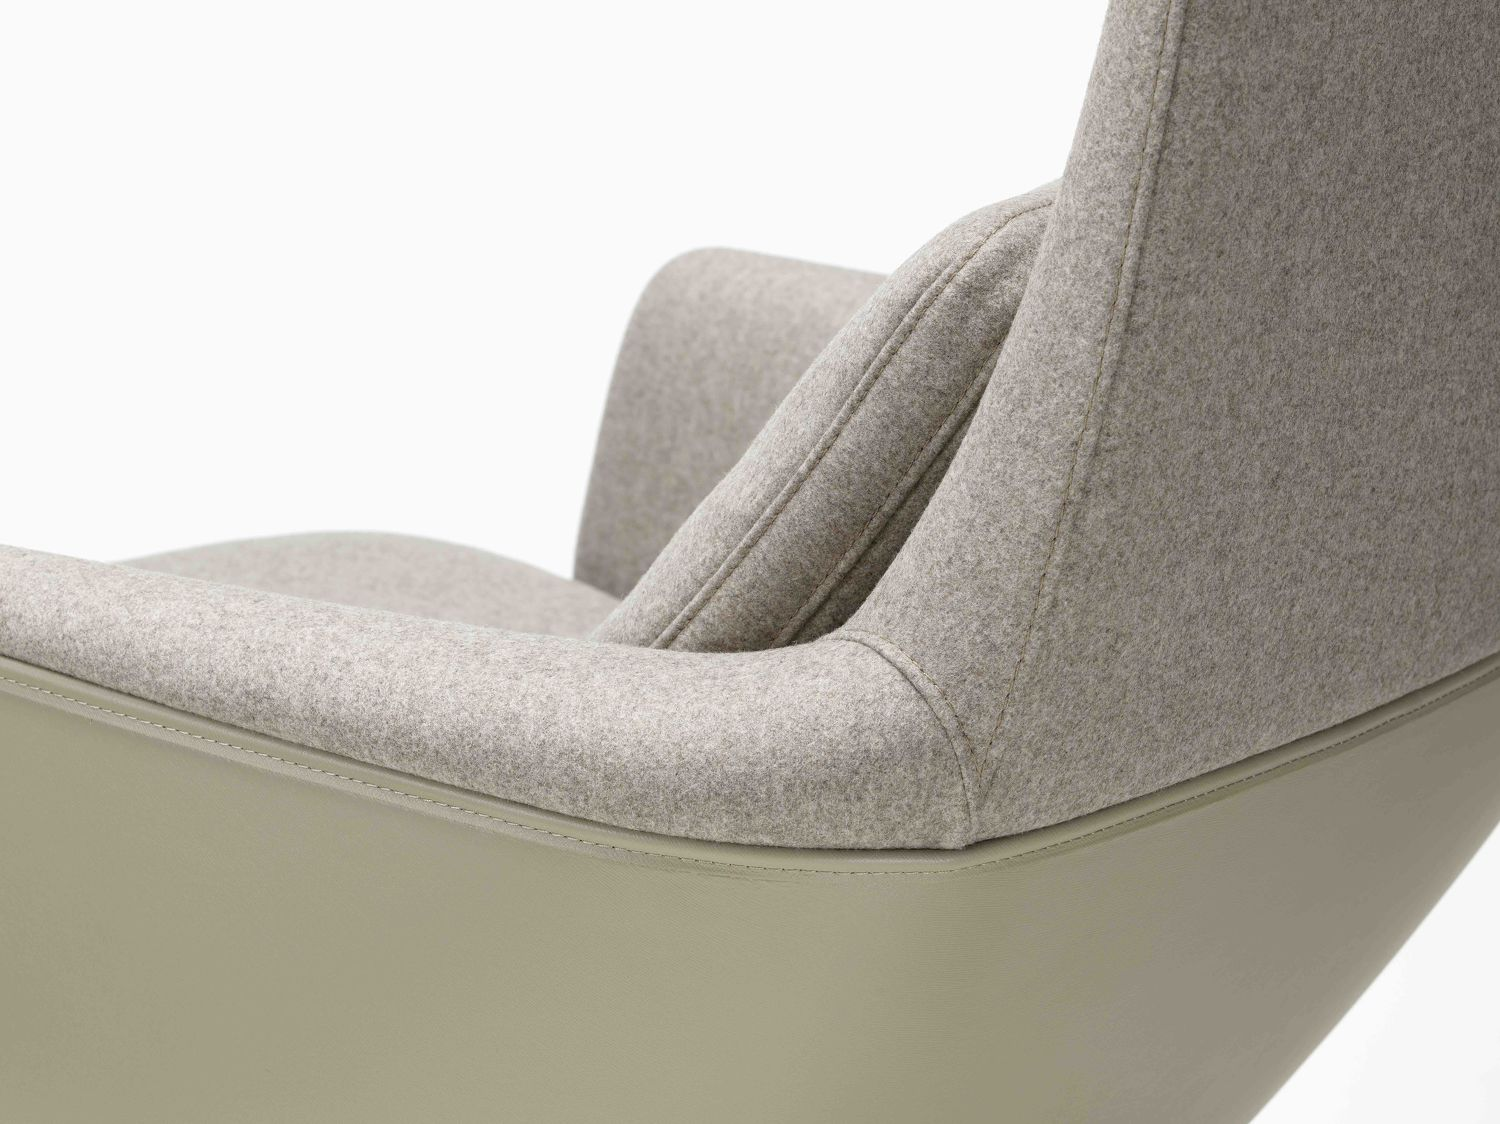 Grand Relax lounge chair - THE EDGE SINGAPORE